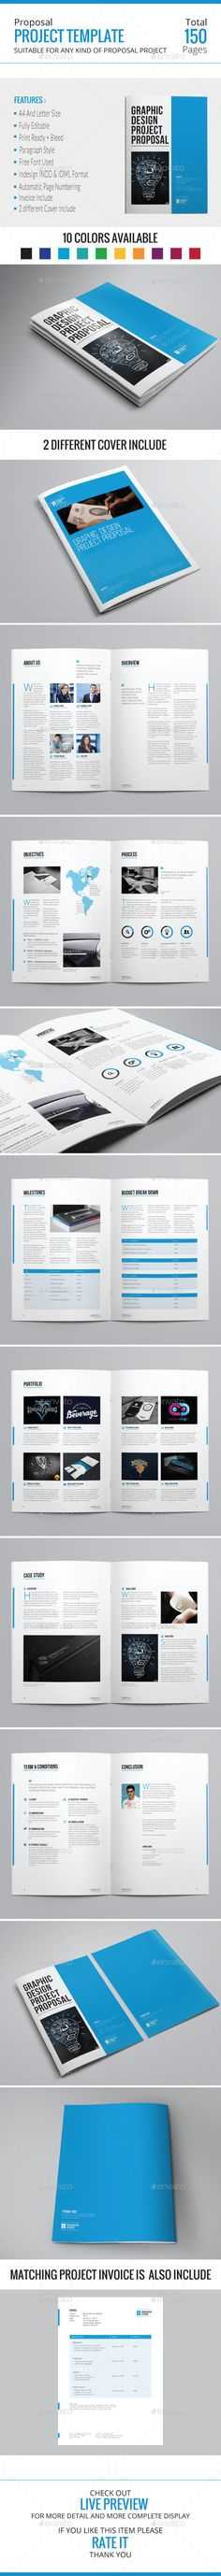 Professional Proposal Template Adobe photoshop, Fonts and Stationery - microsoft word proposal templates